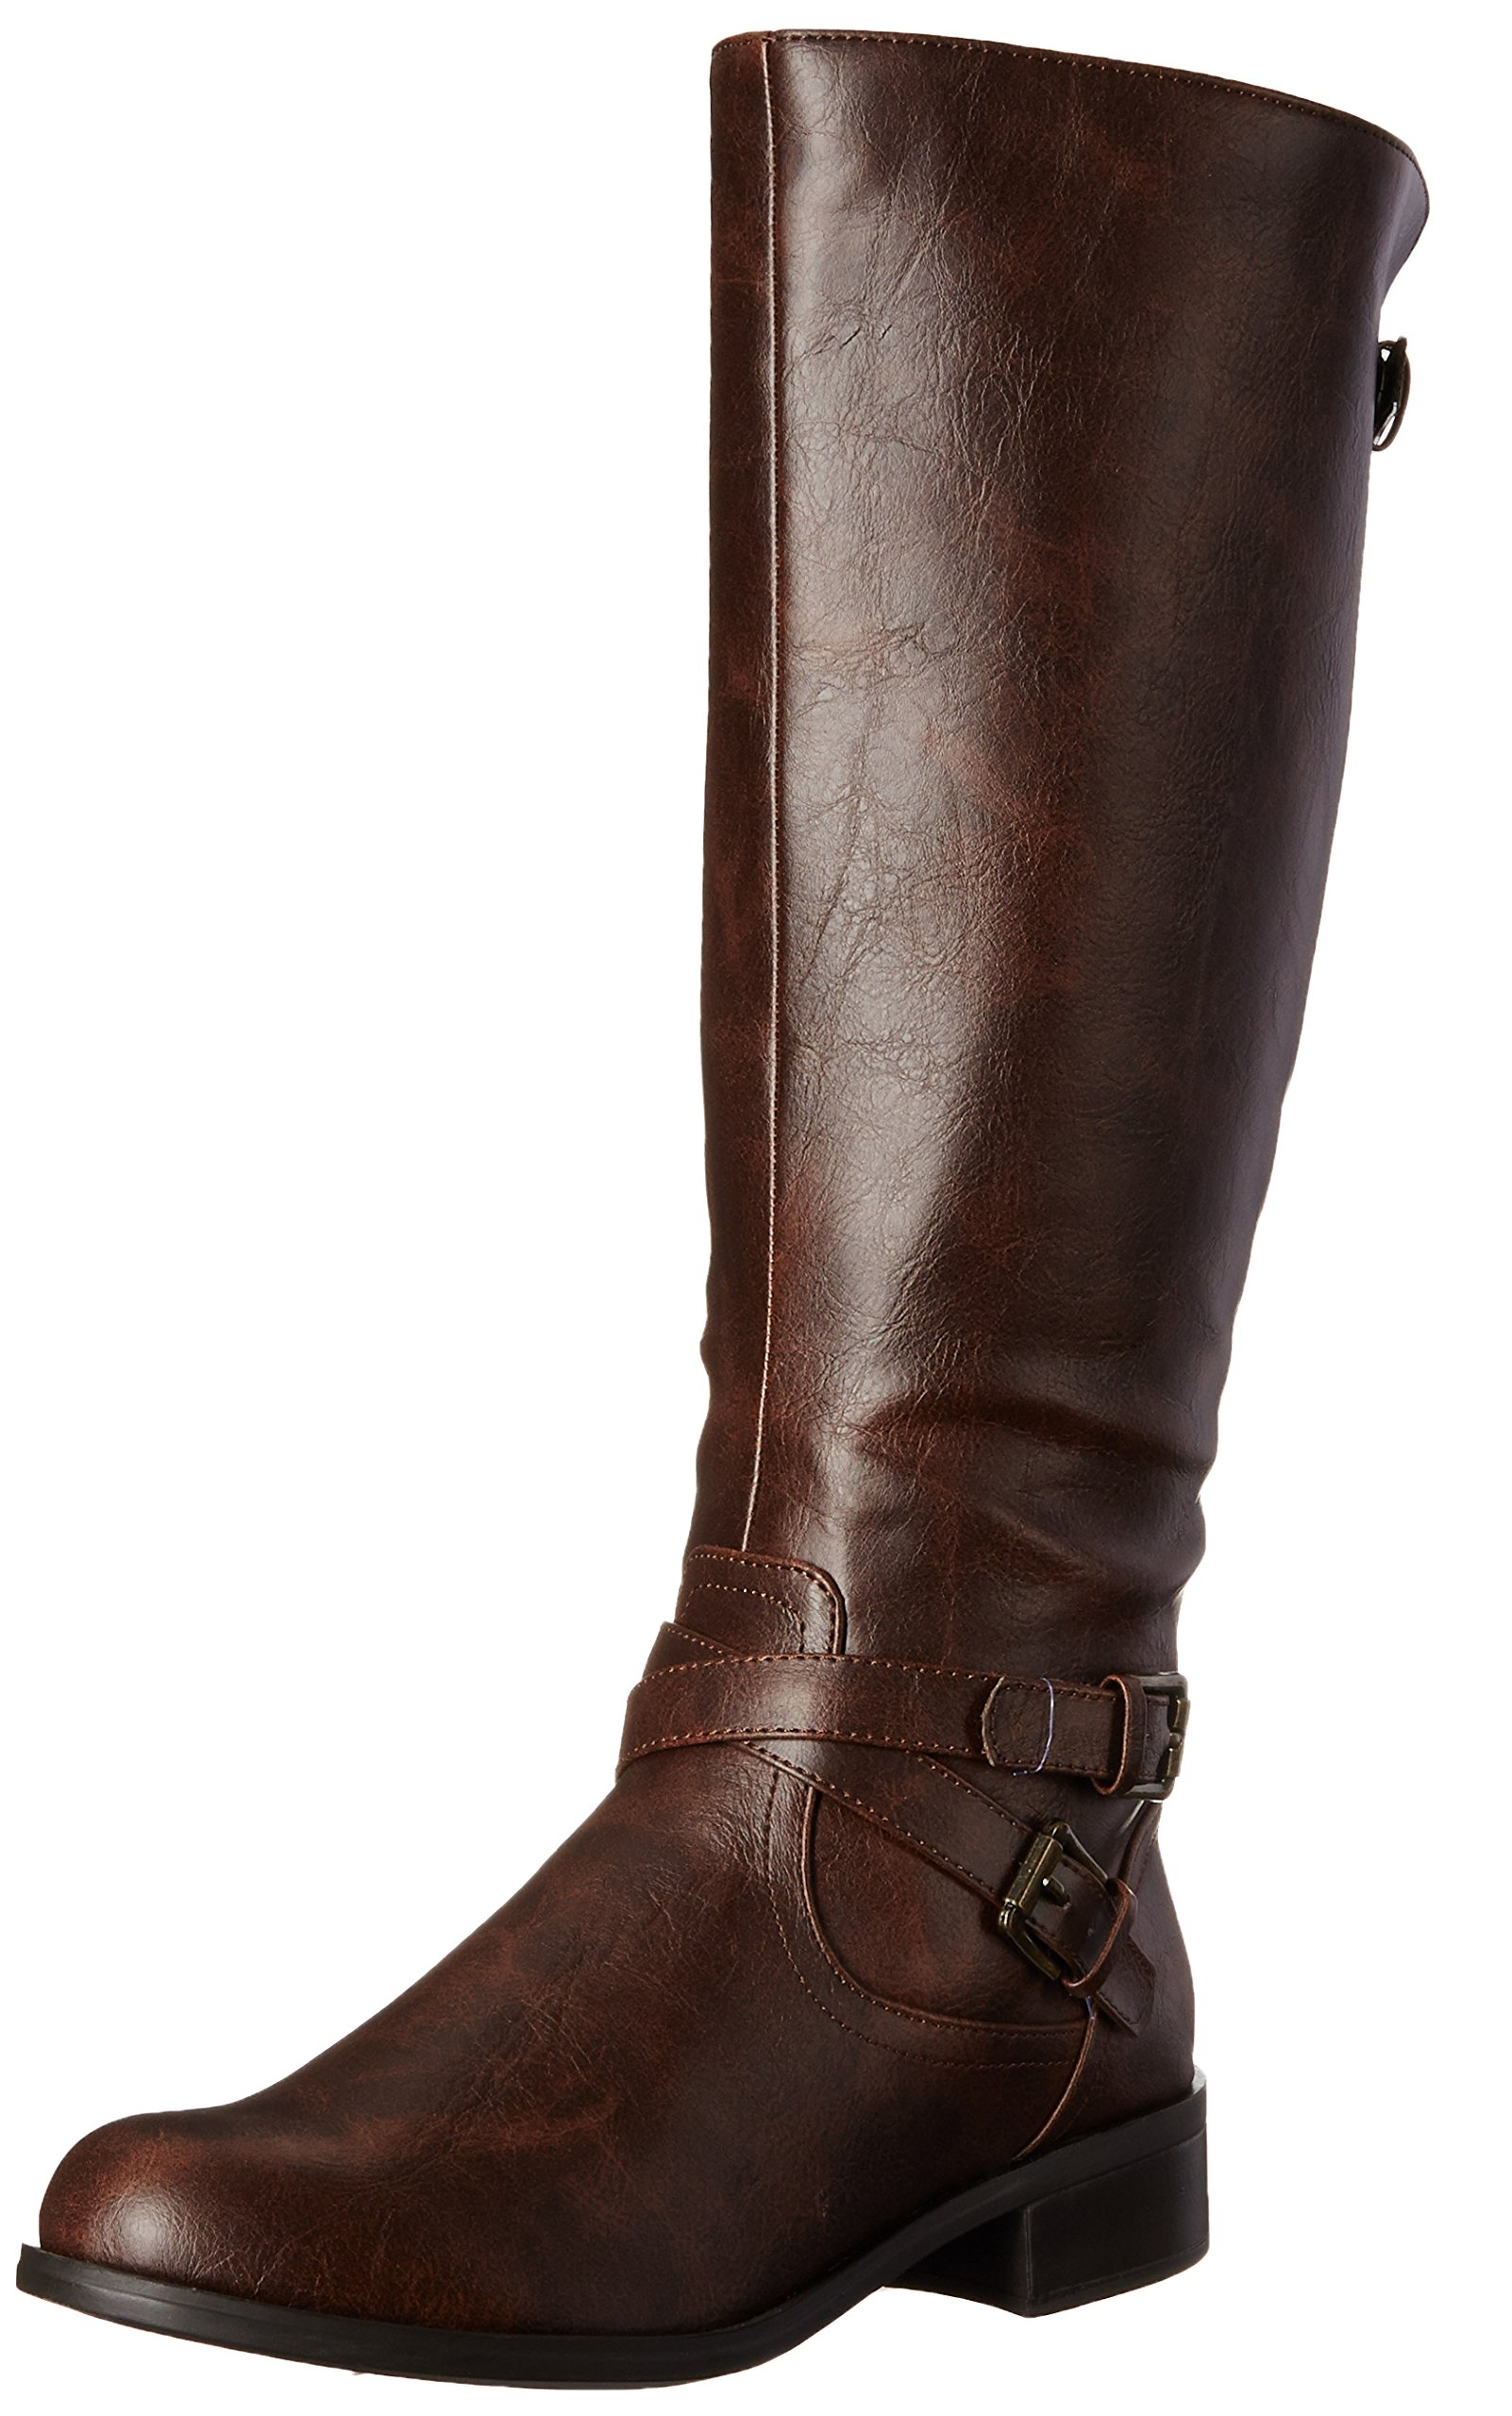 Soda Women's Bio-S Riding Boot, Brown Polyurethane, 10 M US